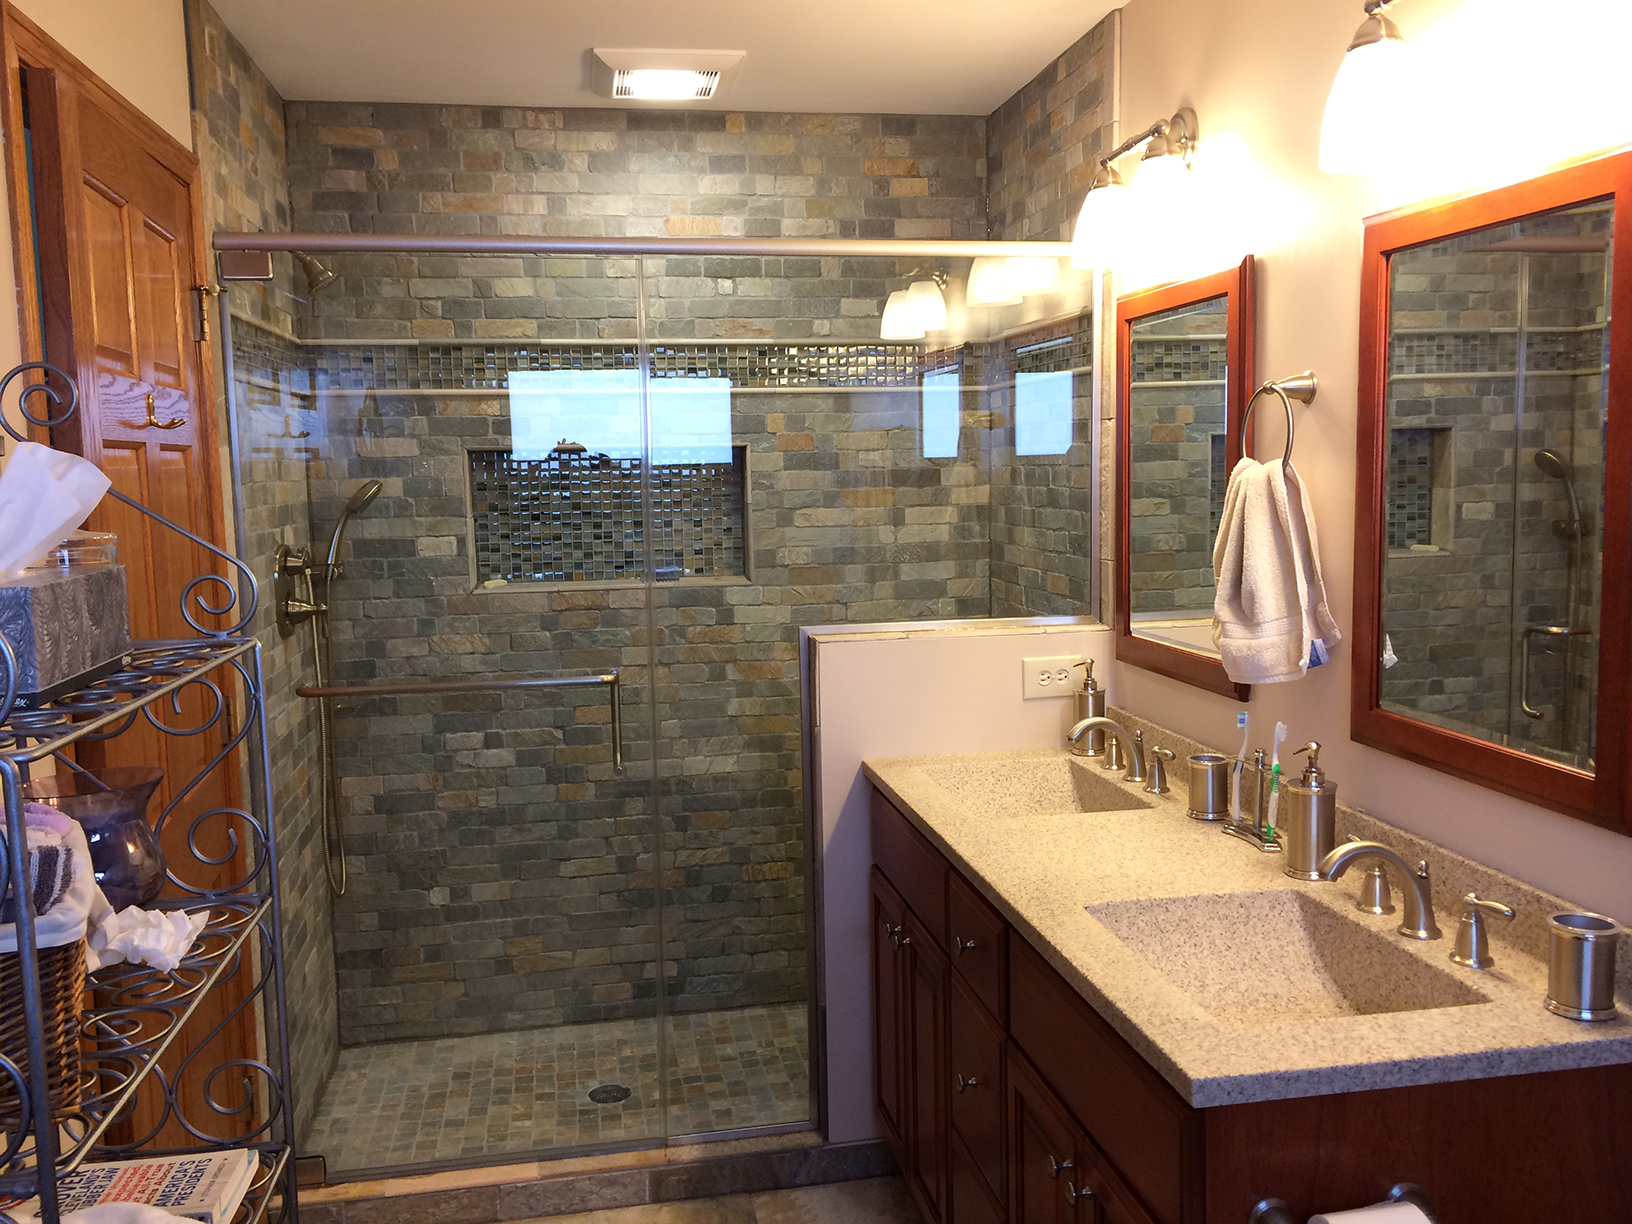 looking to really make your bathroom unique check out this beautiful brick work and tile effect for the shower minor colors in the shower help play off